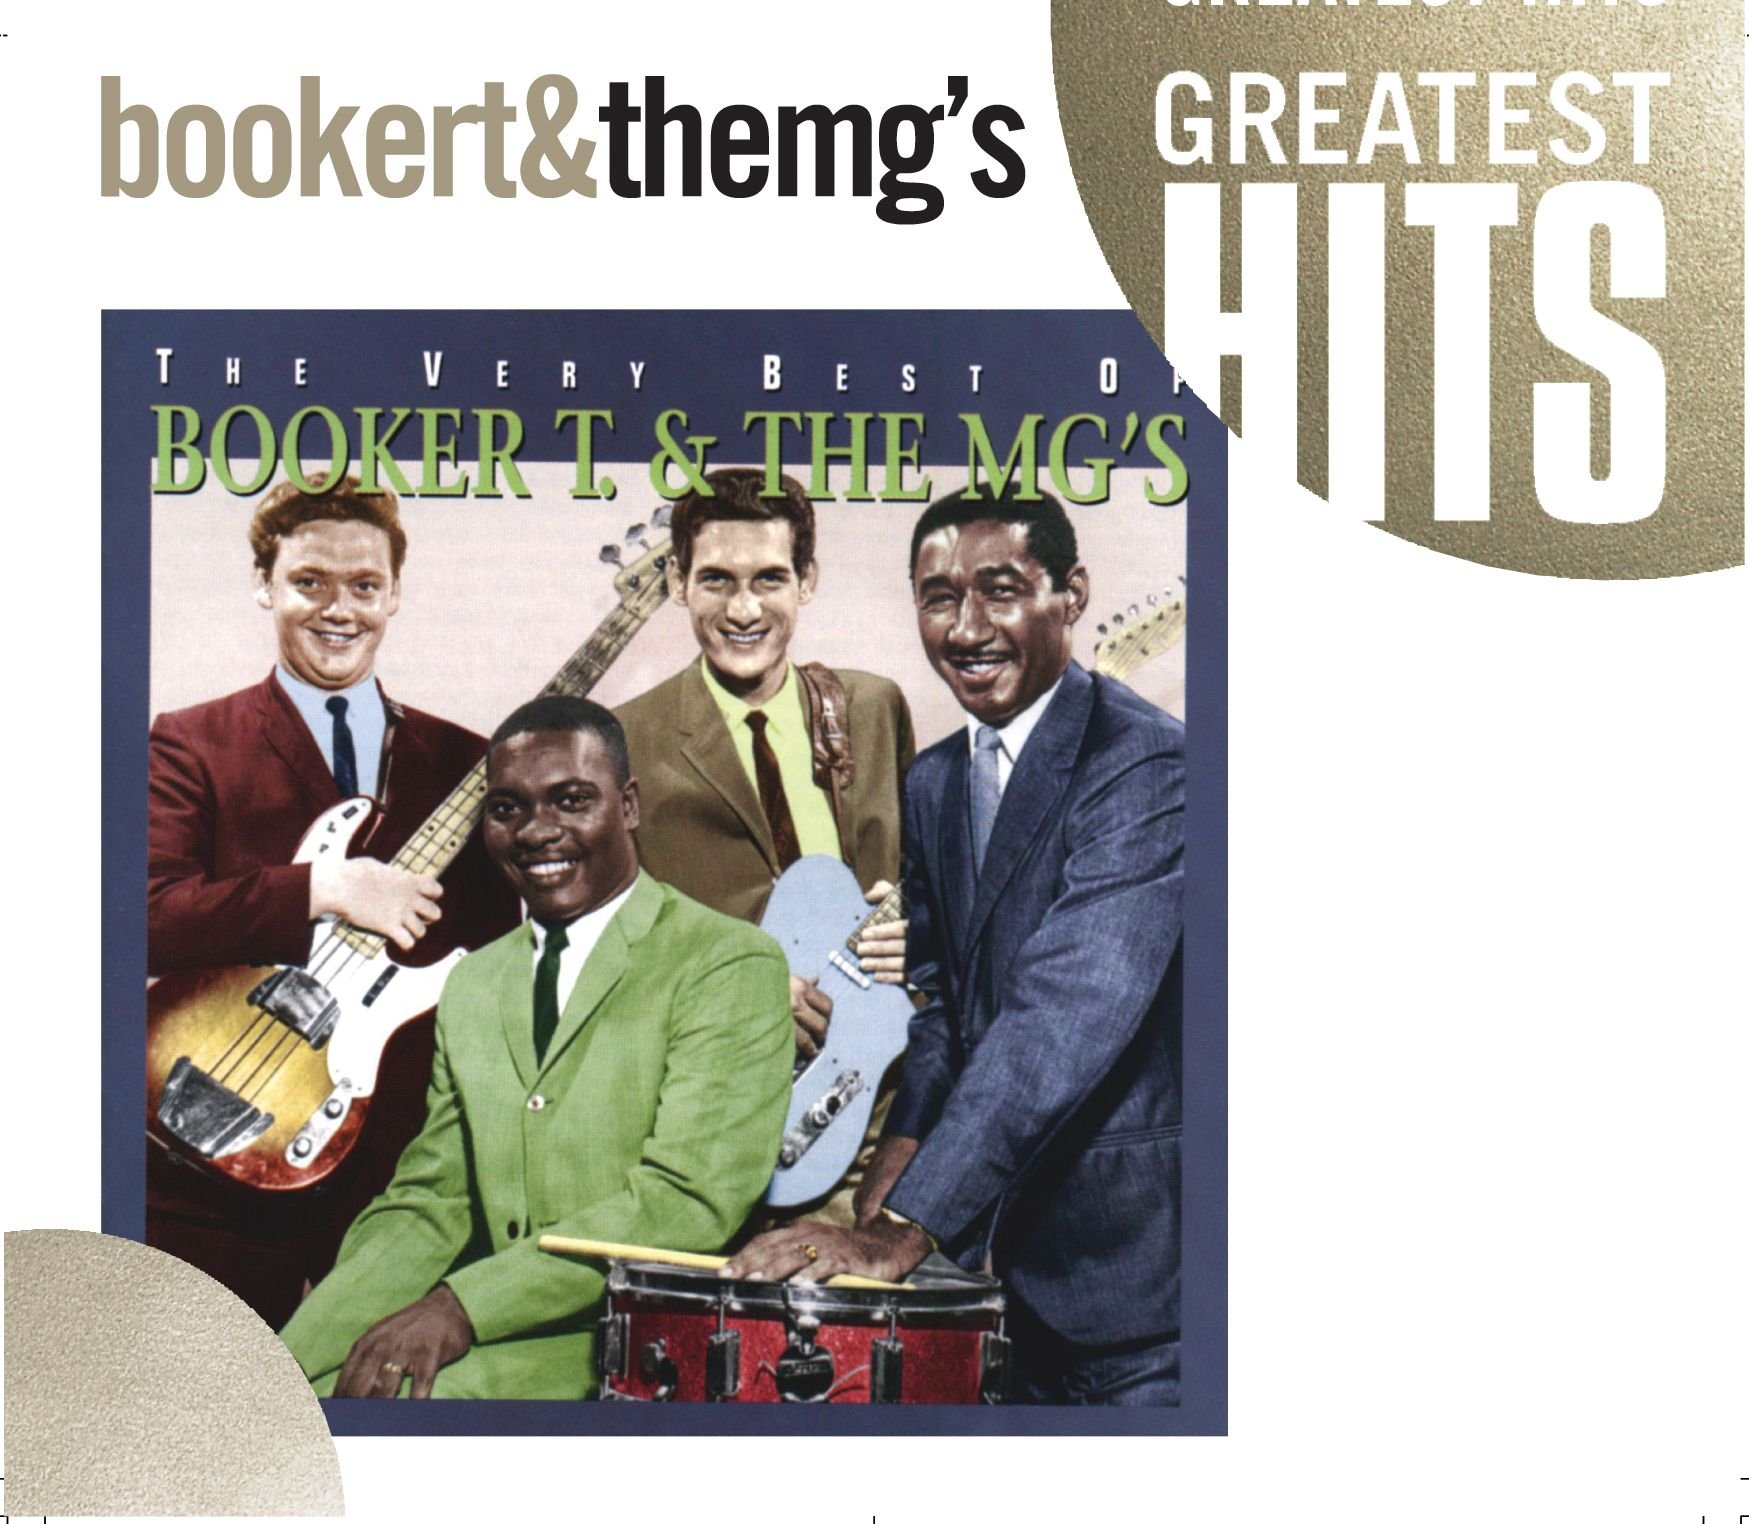 The Very Best of Booker T. & The MG's by Atlantic